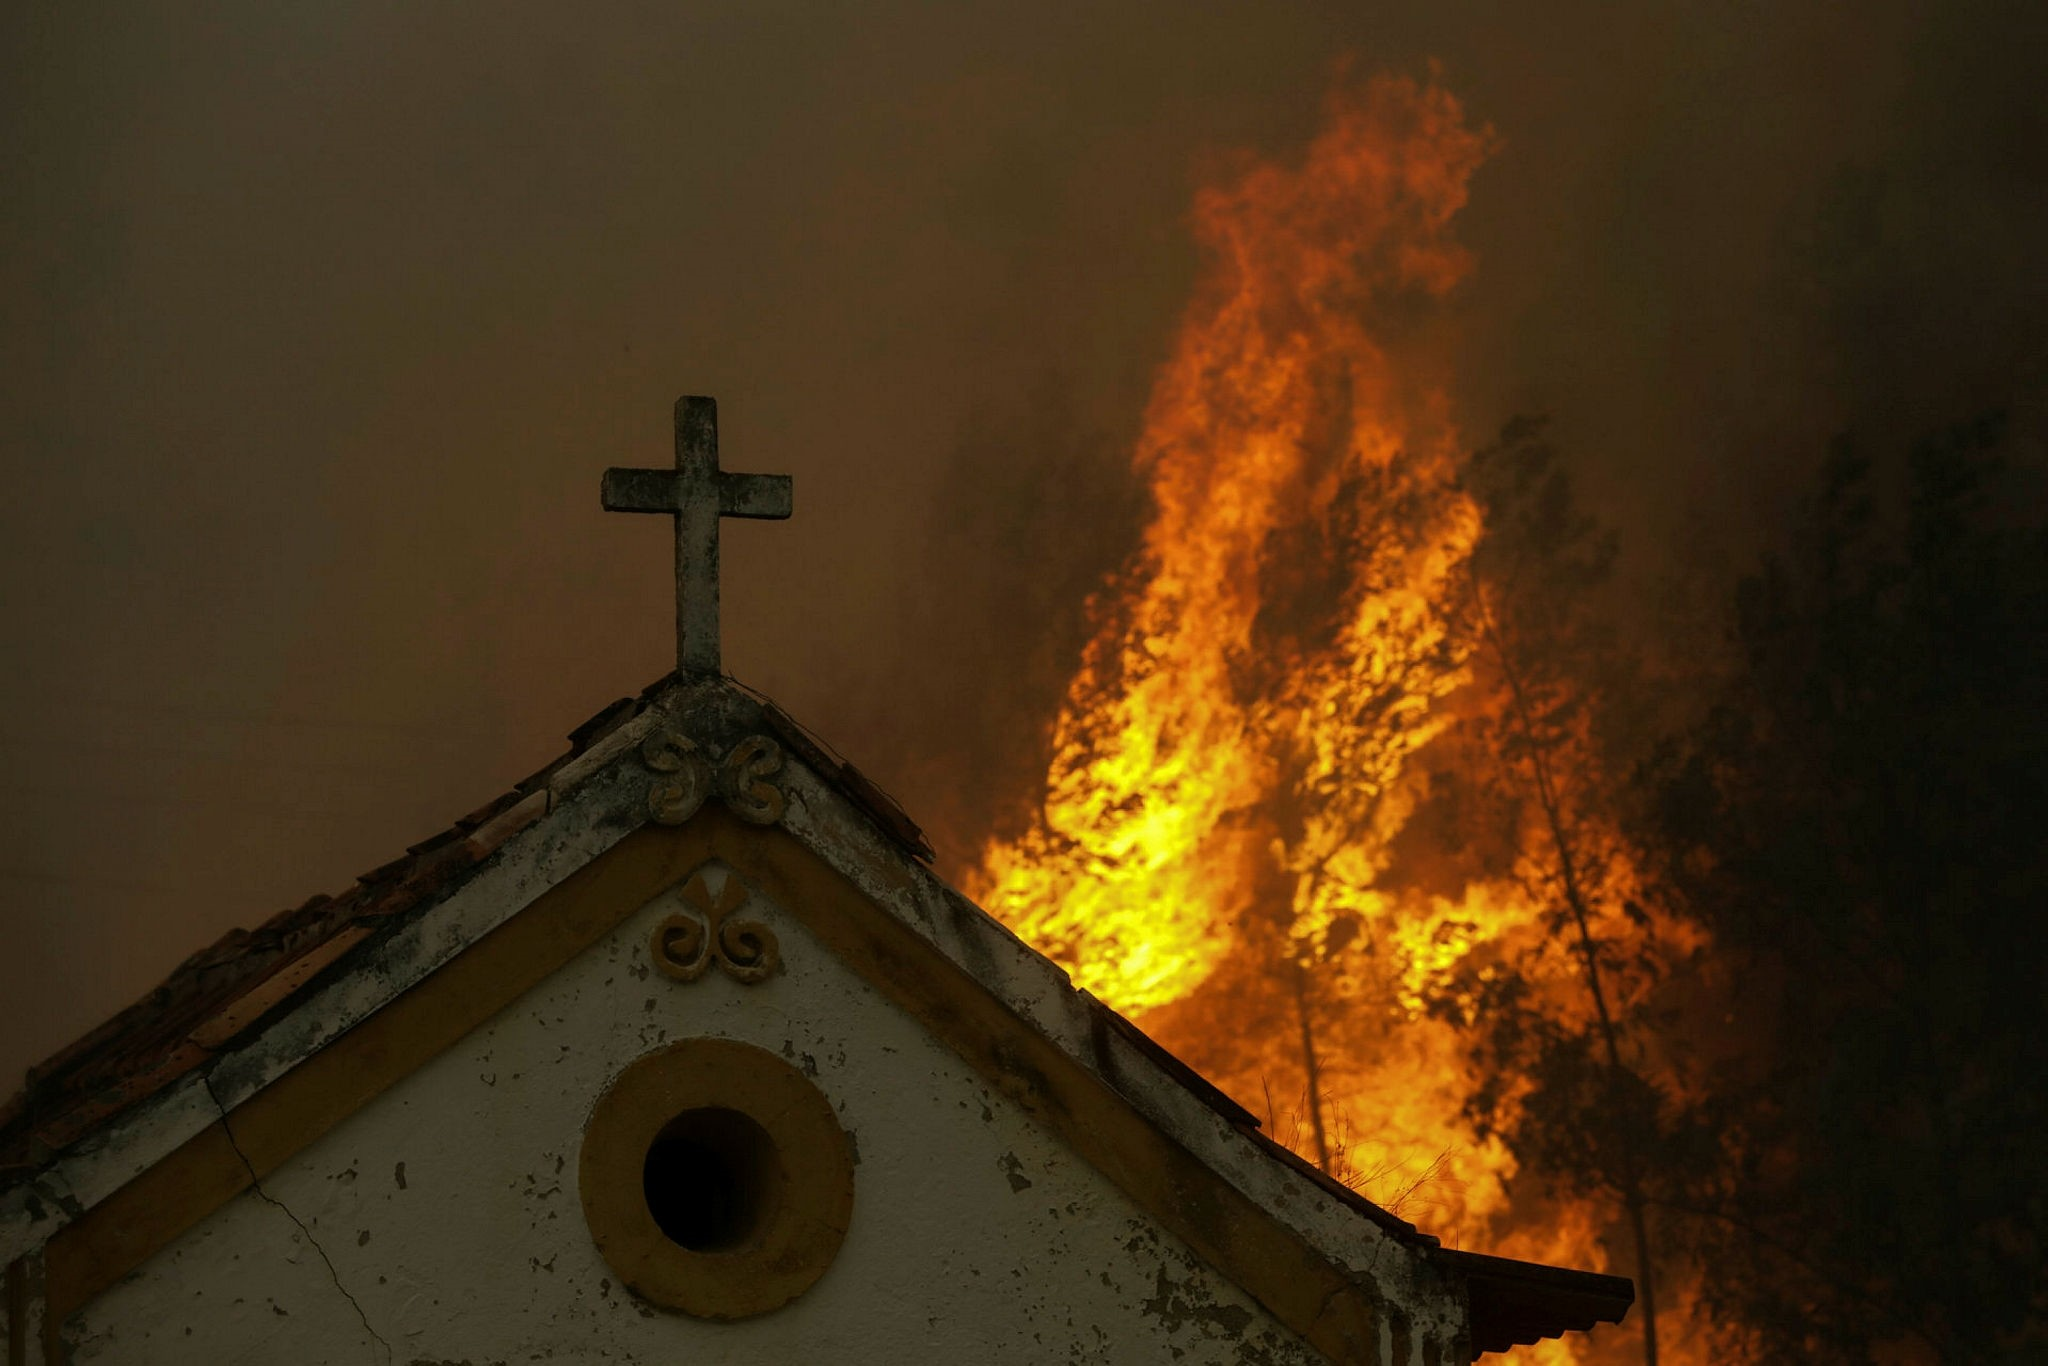 The fire threatens a small chapel in Moinhos village, Lousa, Portugal, 15 October 2017. (EPA Photo)